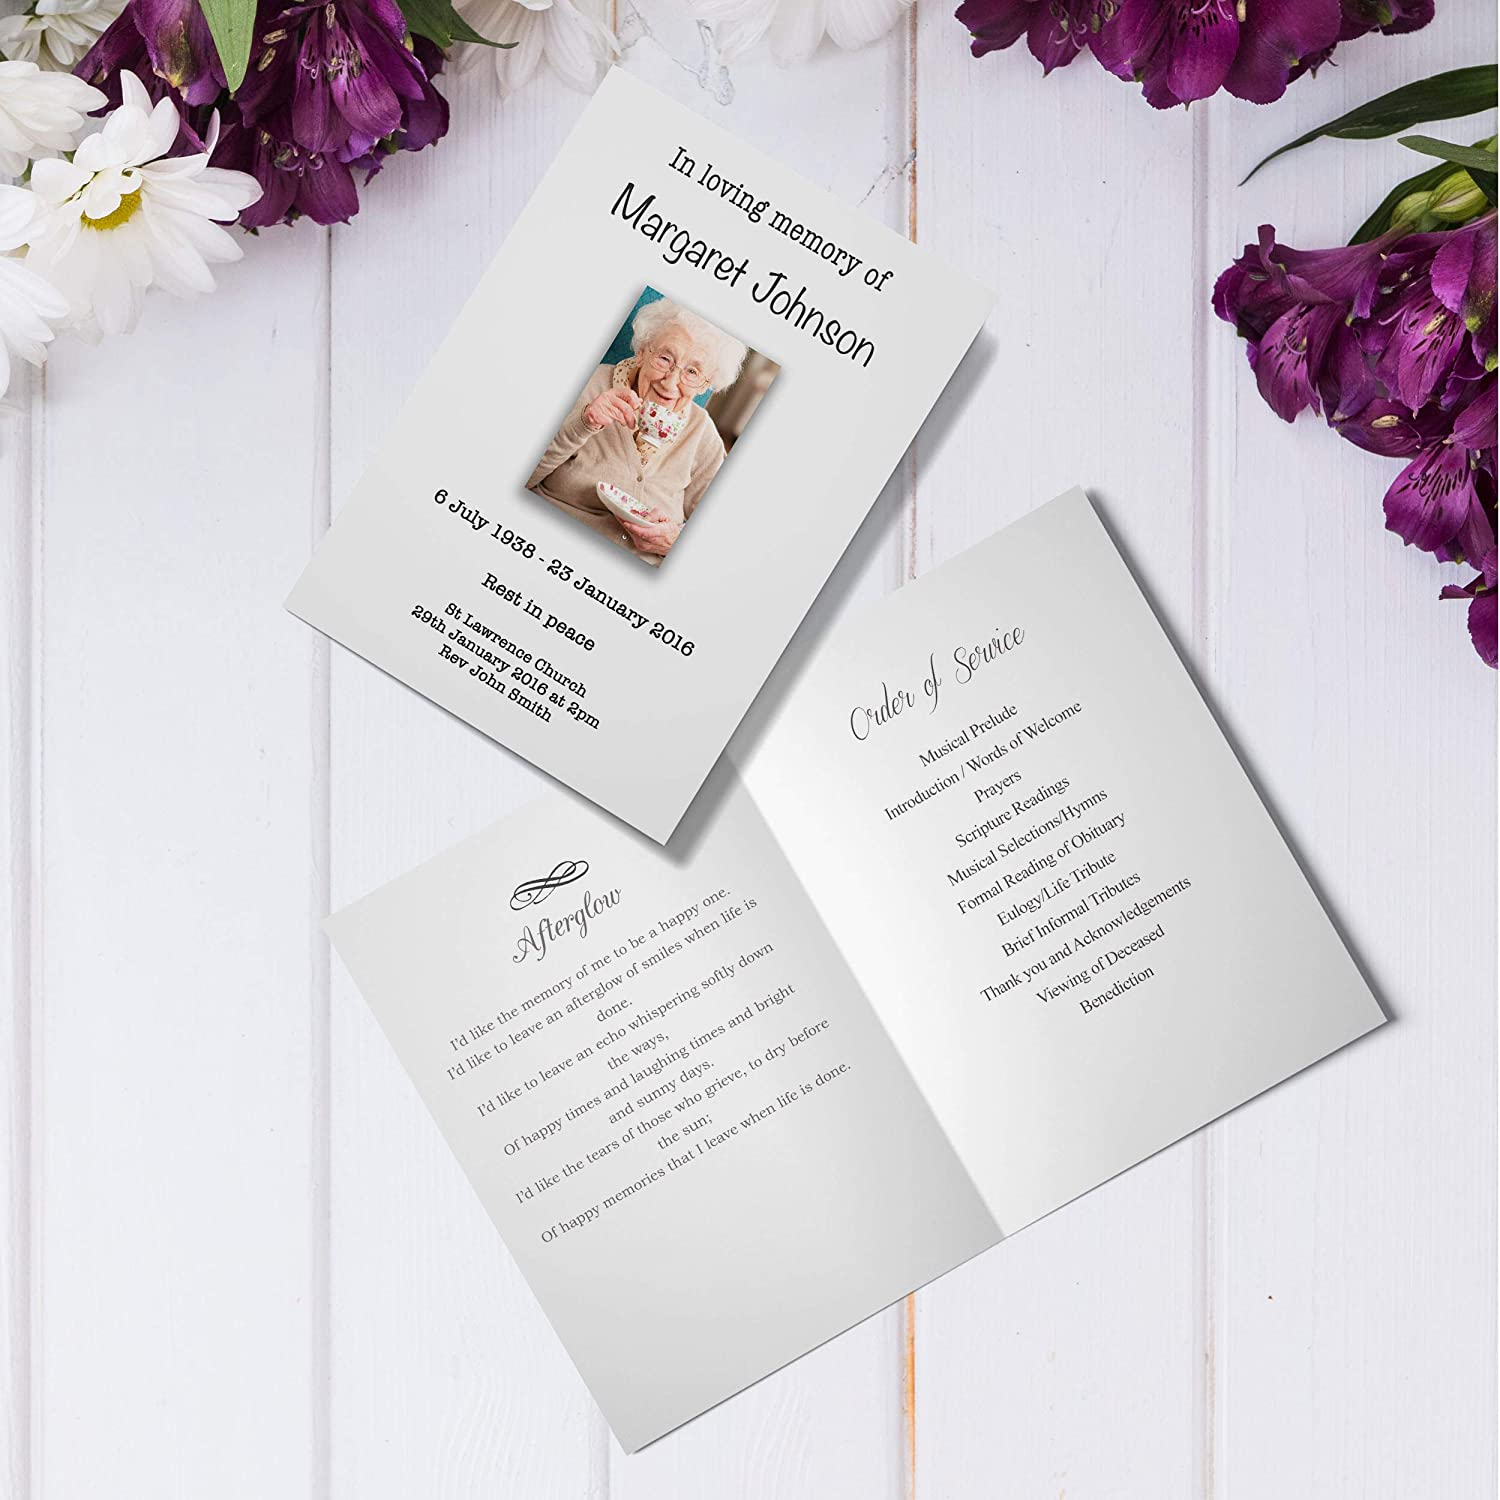 Personalised Memorial Funeral Order of Service Cards With